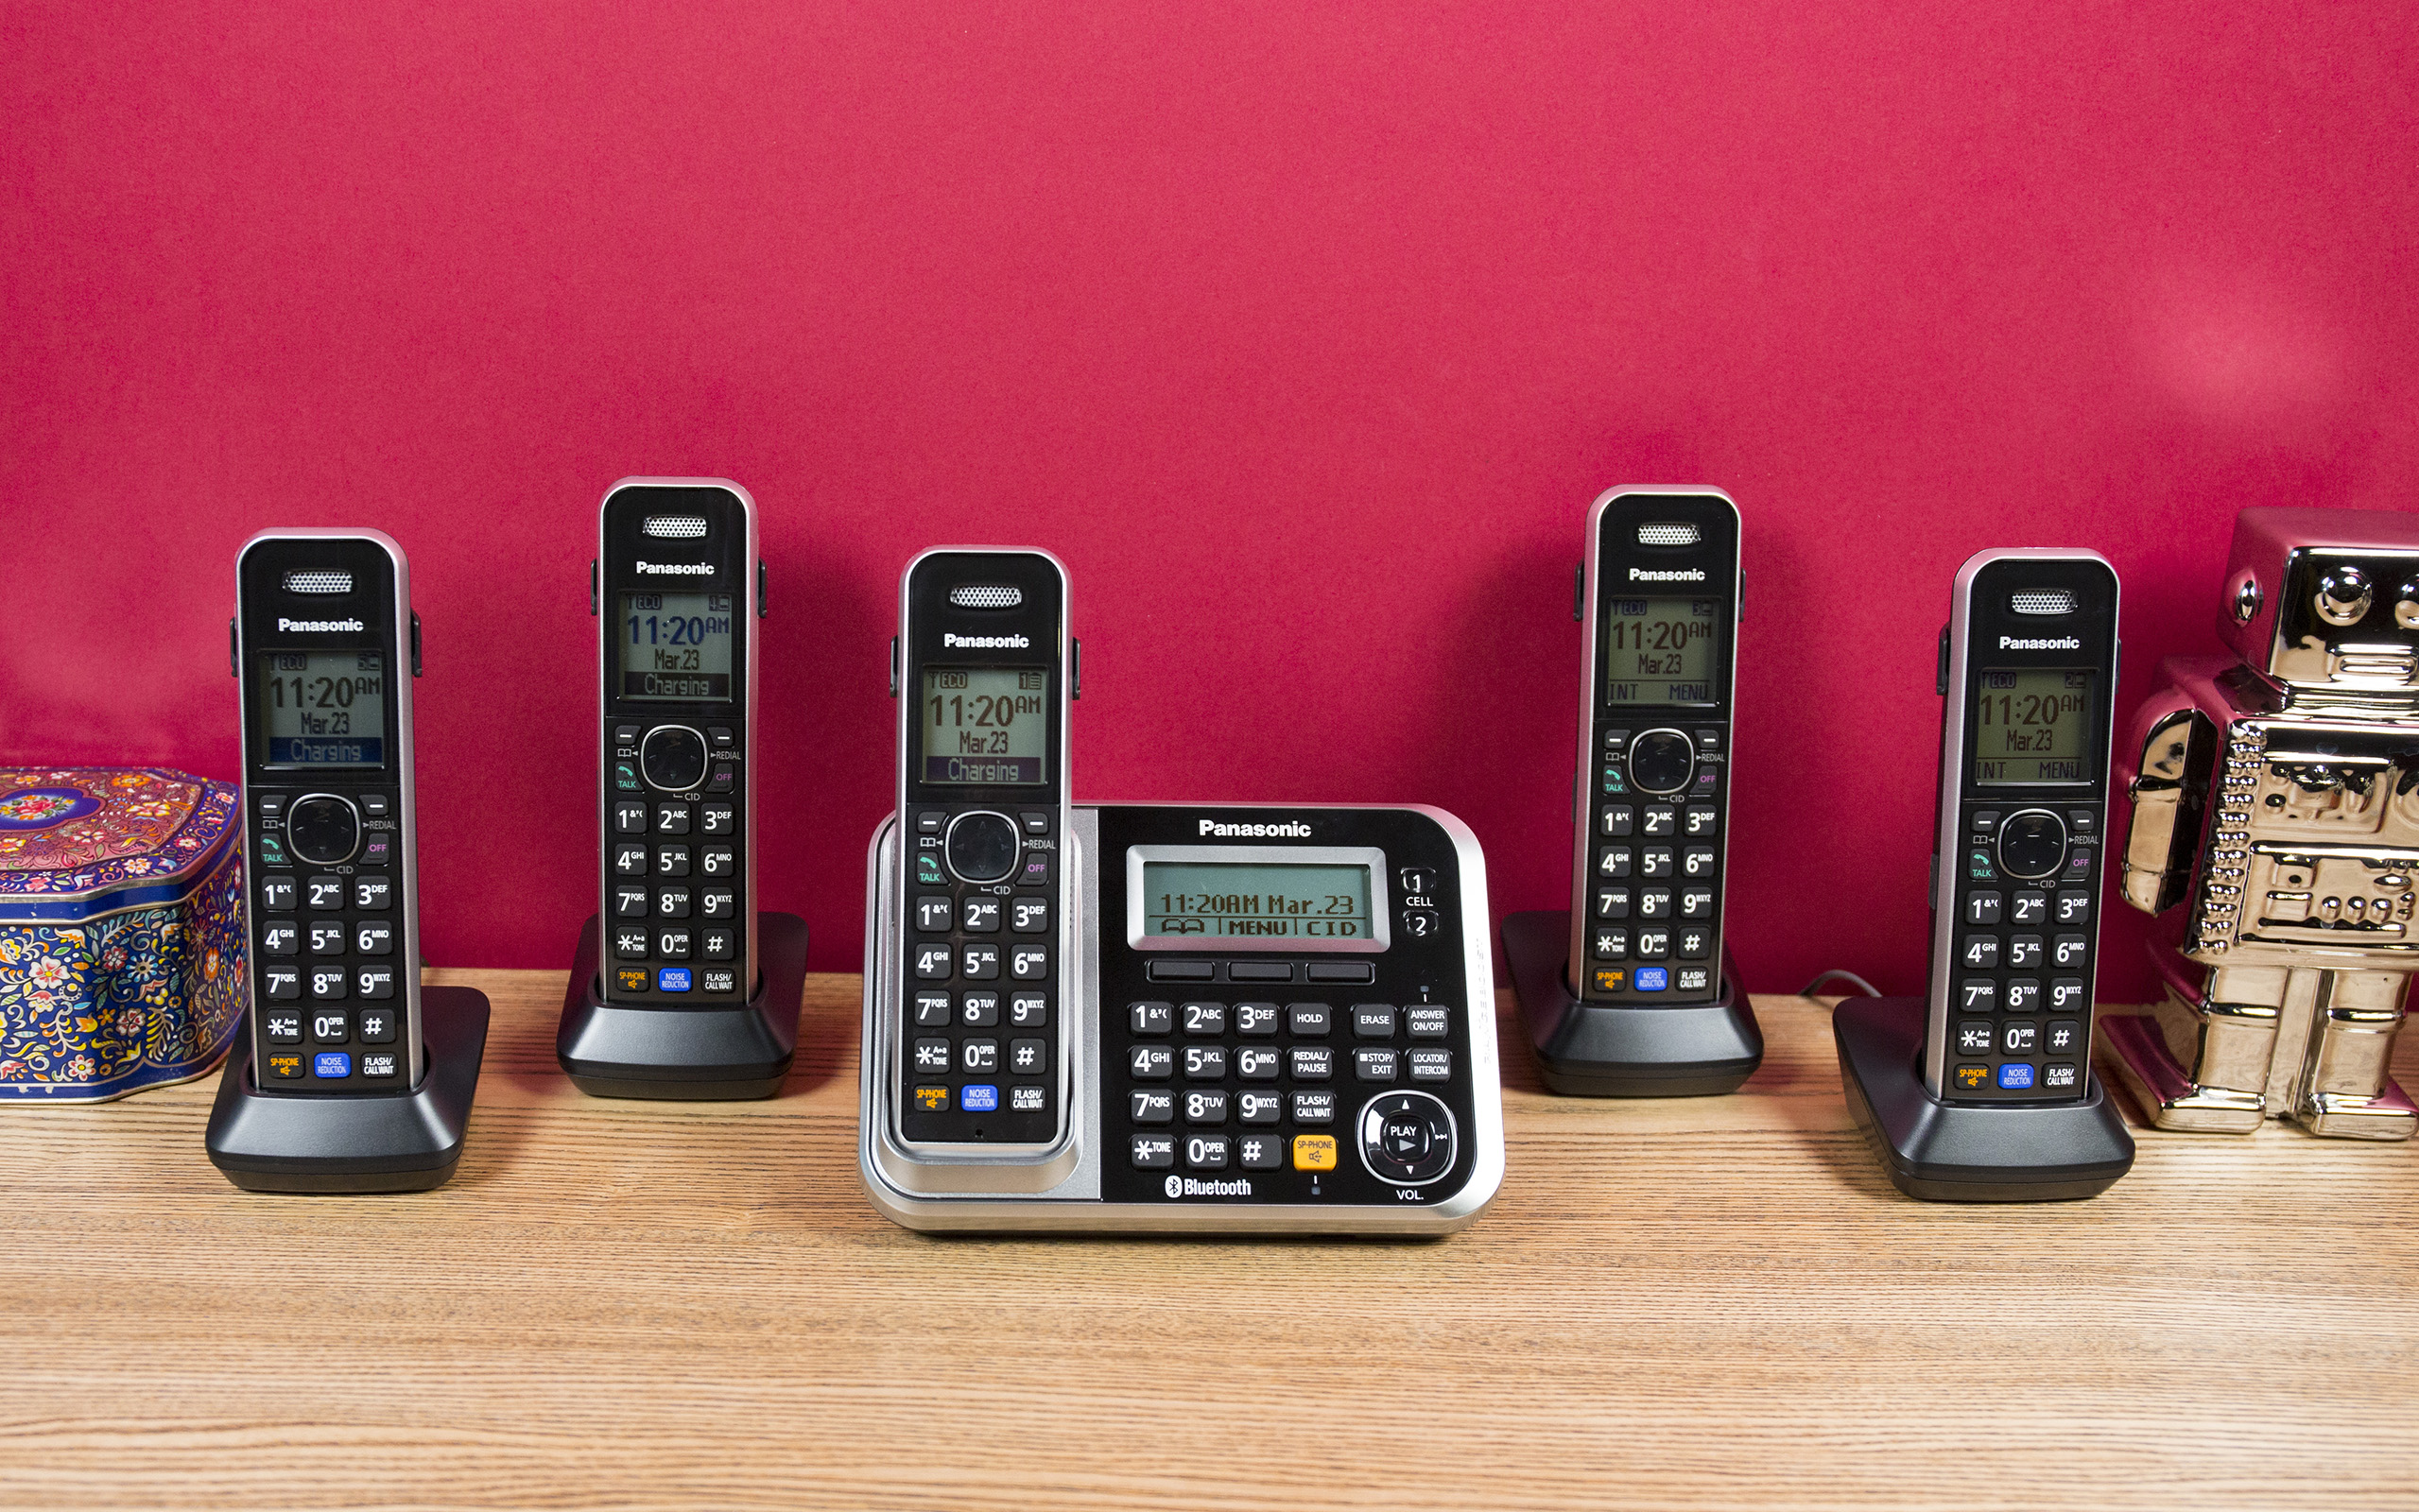 Best Cordless Phones 2019 - Landlines With Answering